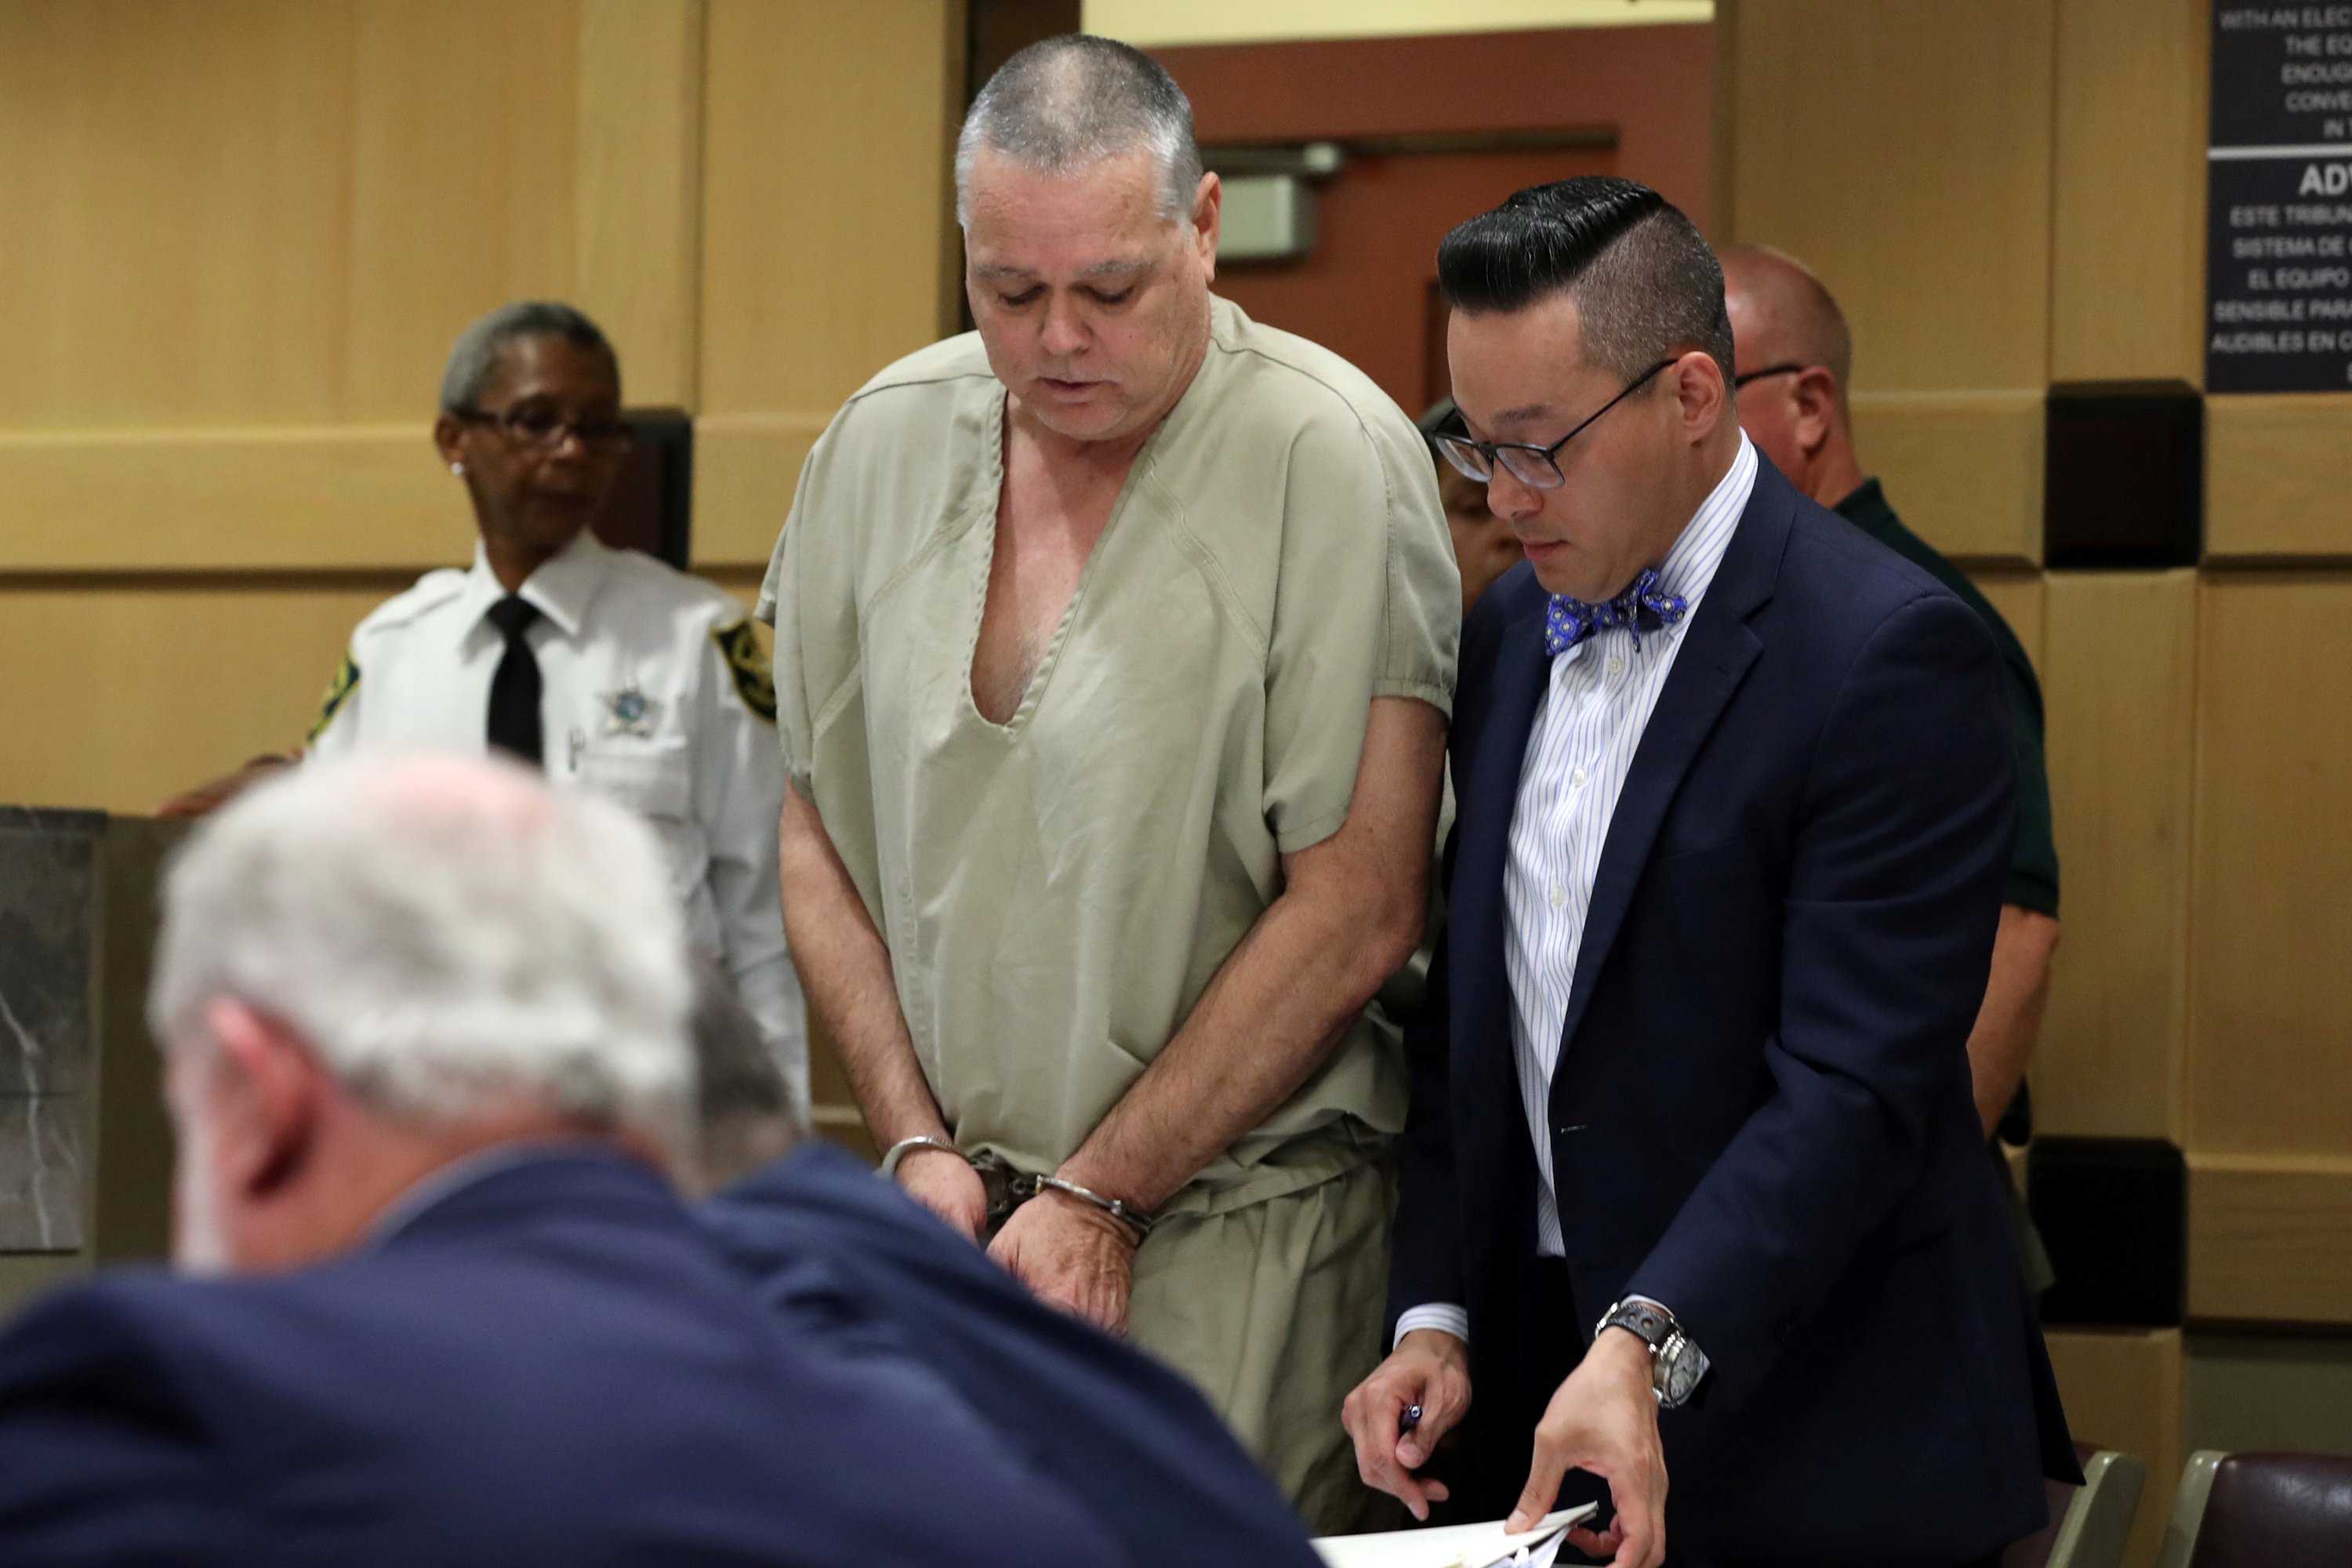 Former Broward County sheriff's deputy Scot Peterson and his defense attorney Joseph DiRuzzo (R) attend a court hearing at the Broward County Courthouse in Fort Lauderdale, Florida, U.S., June 6, 2019. Amy Beth Bennett/South Florida Sun Sentinel/Pool via REUTERS